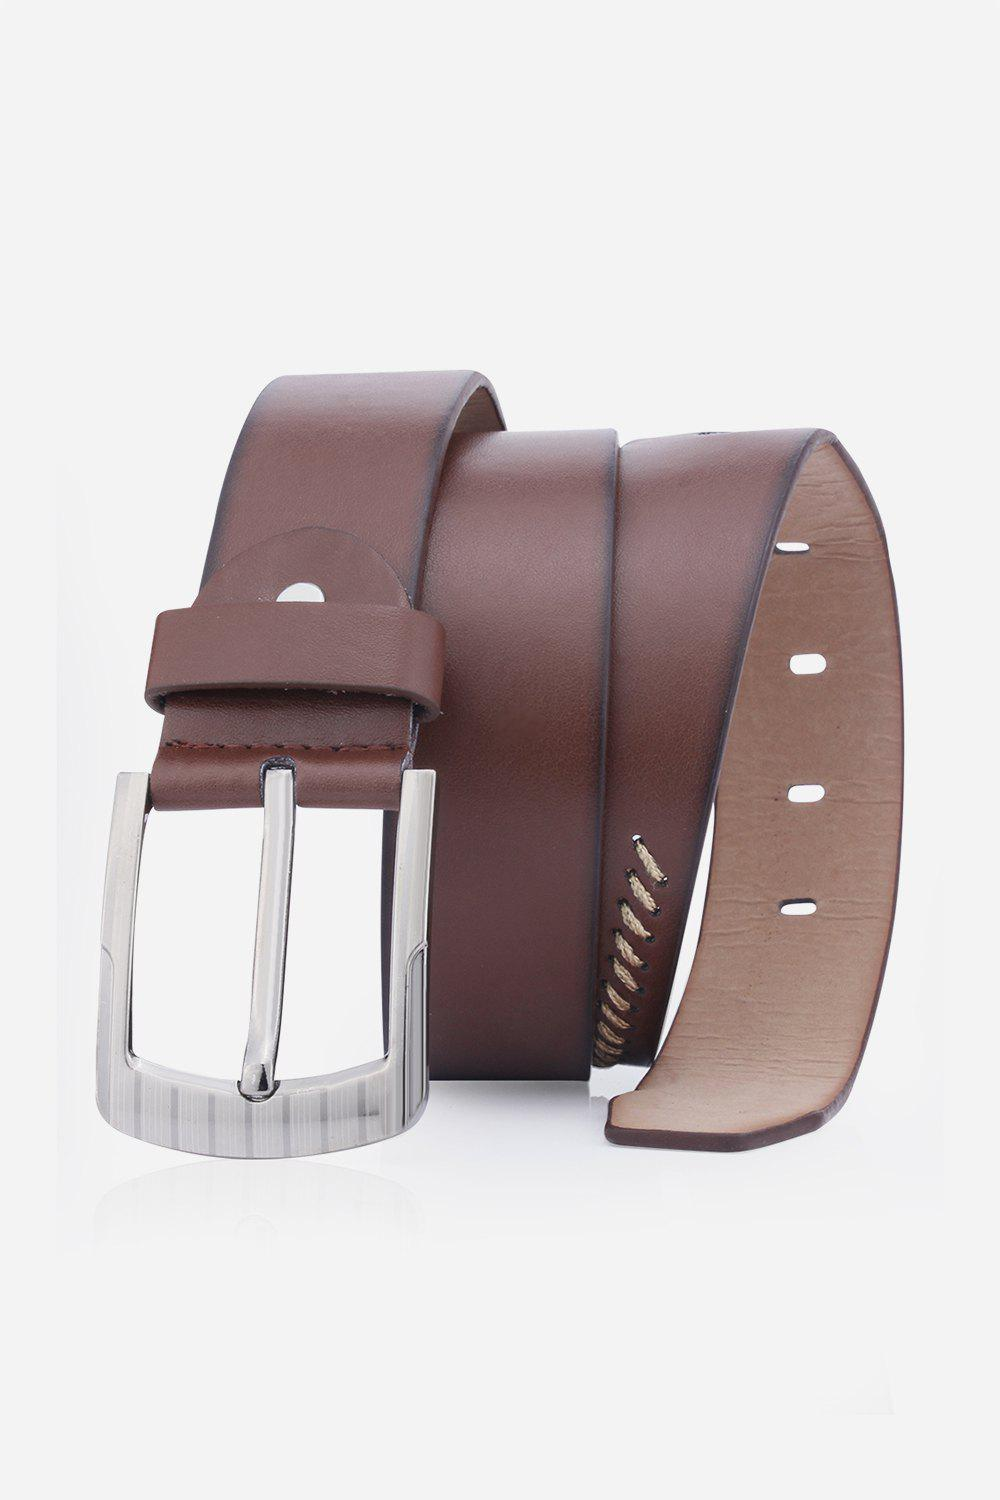 Hot Pin Buckle Retro Sewing Thread Wide Belt